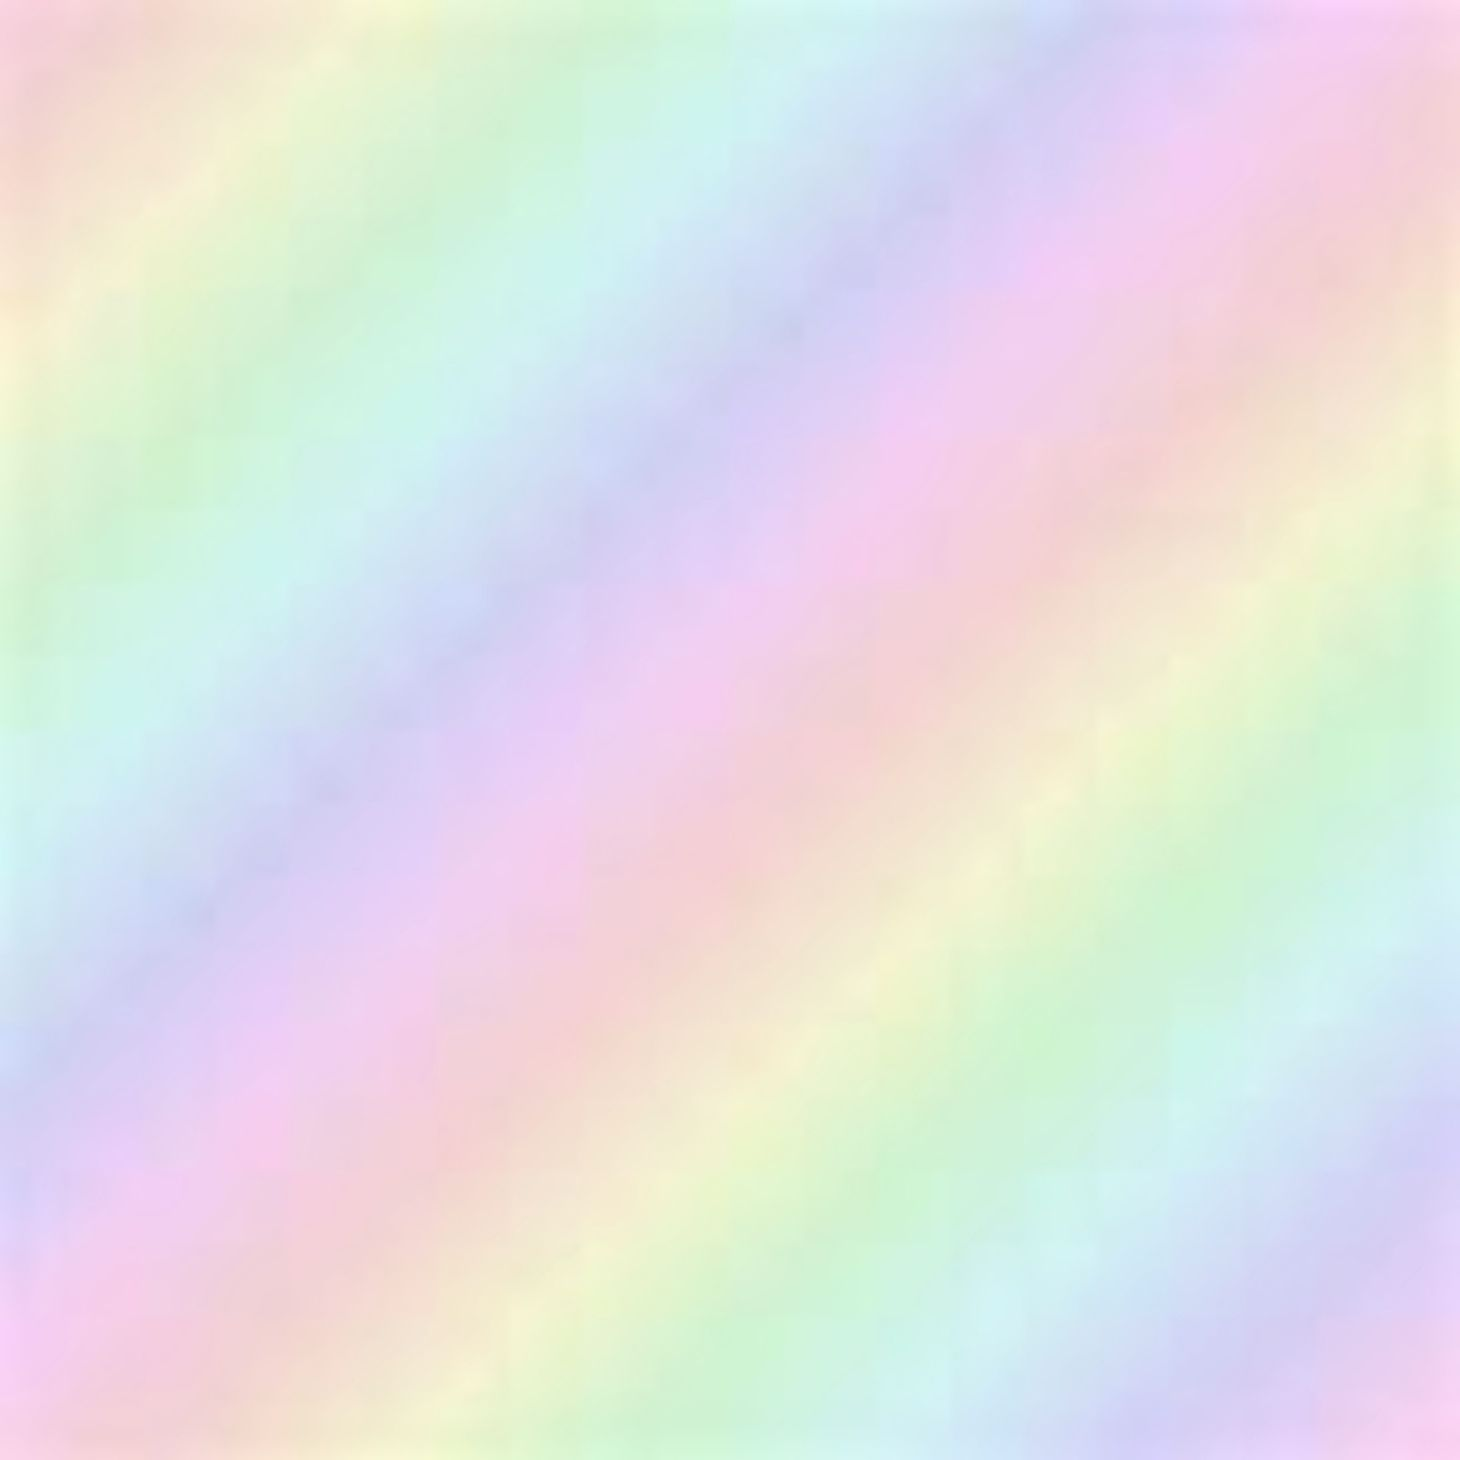 Cute Colorful Iphone Wallpaper: Pretty Rainbow Background